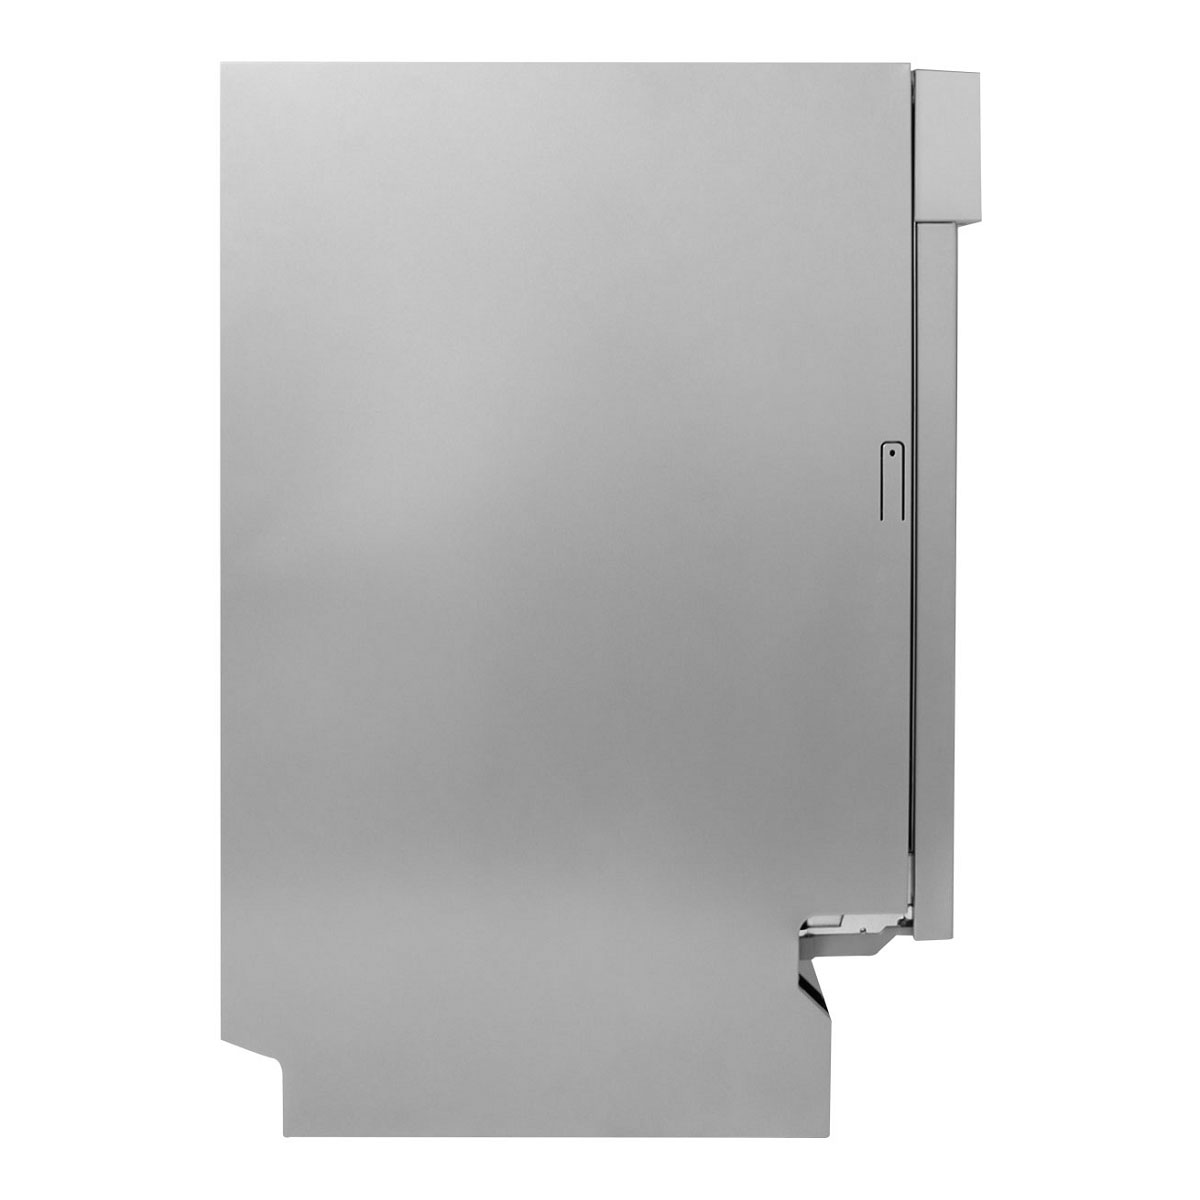 Omega PL403A Semi Integrated Dishwasher 26001